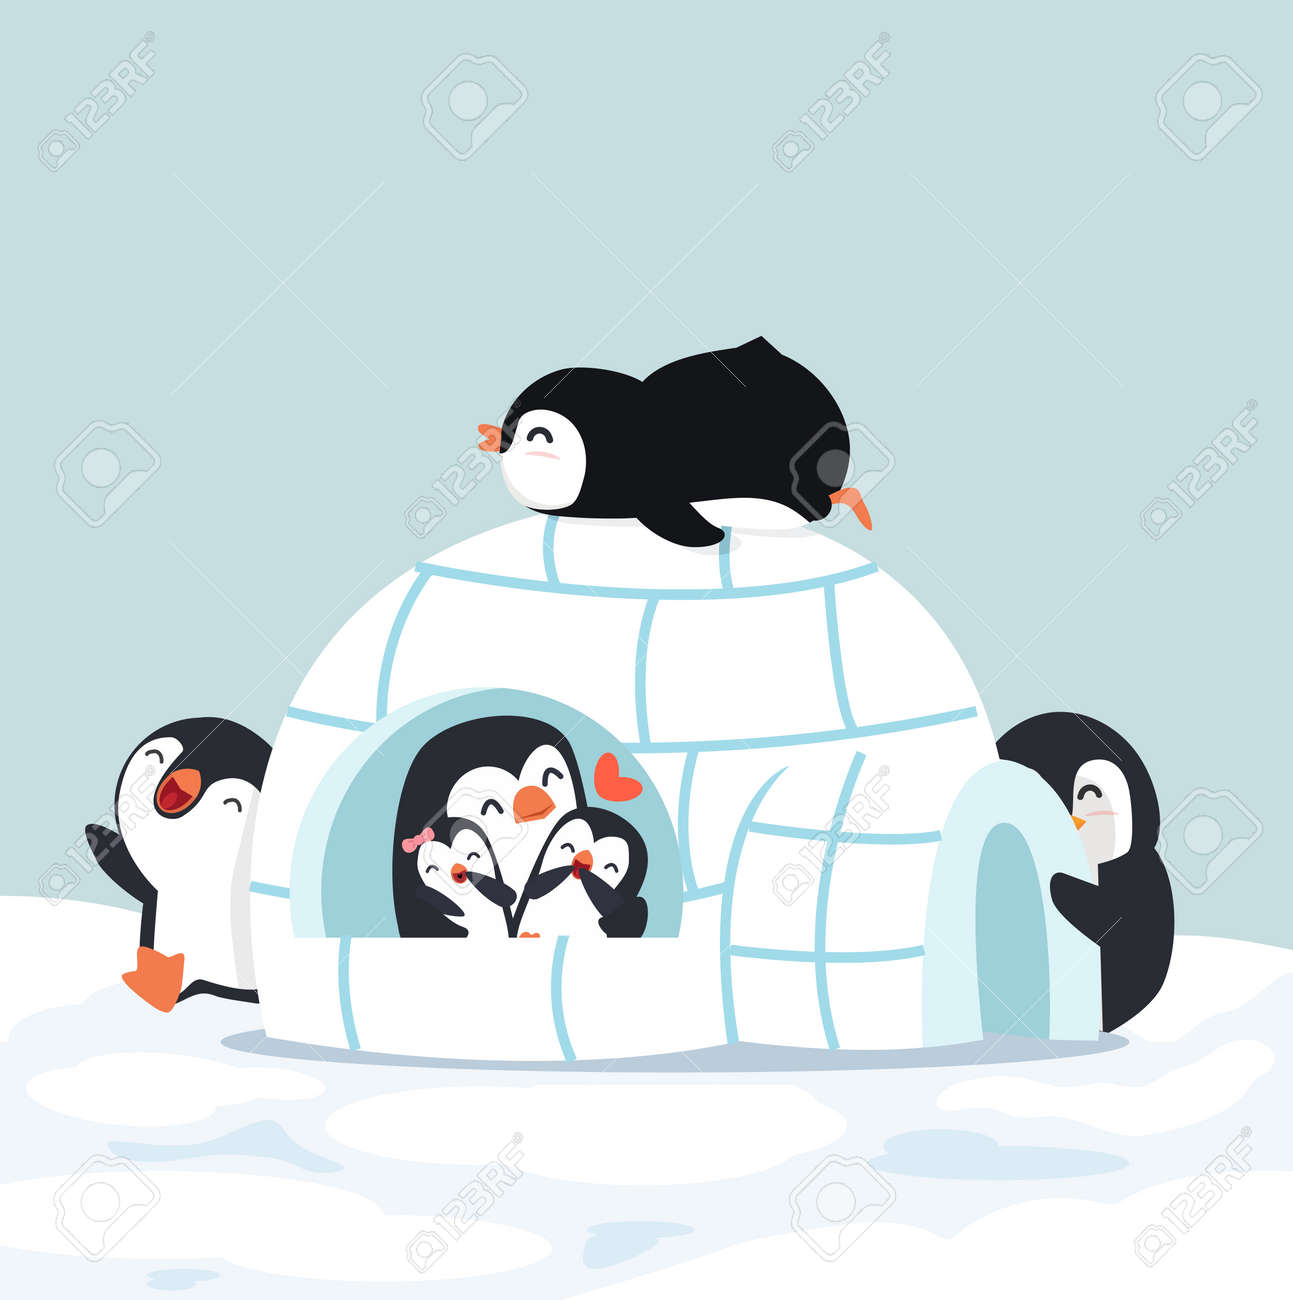 Cute Penguins Igloo ice house in winter - 168920191